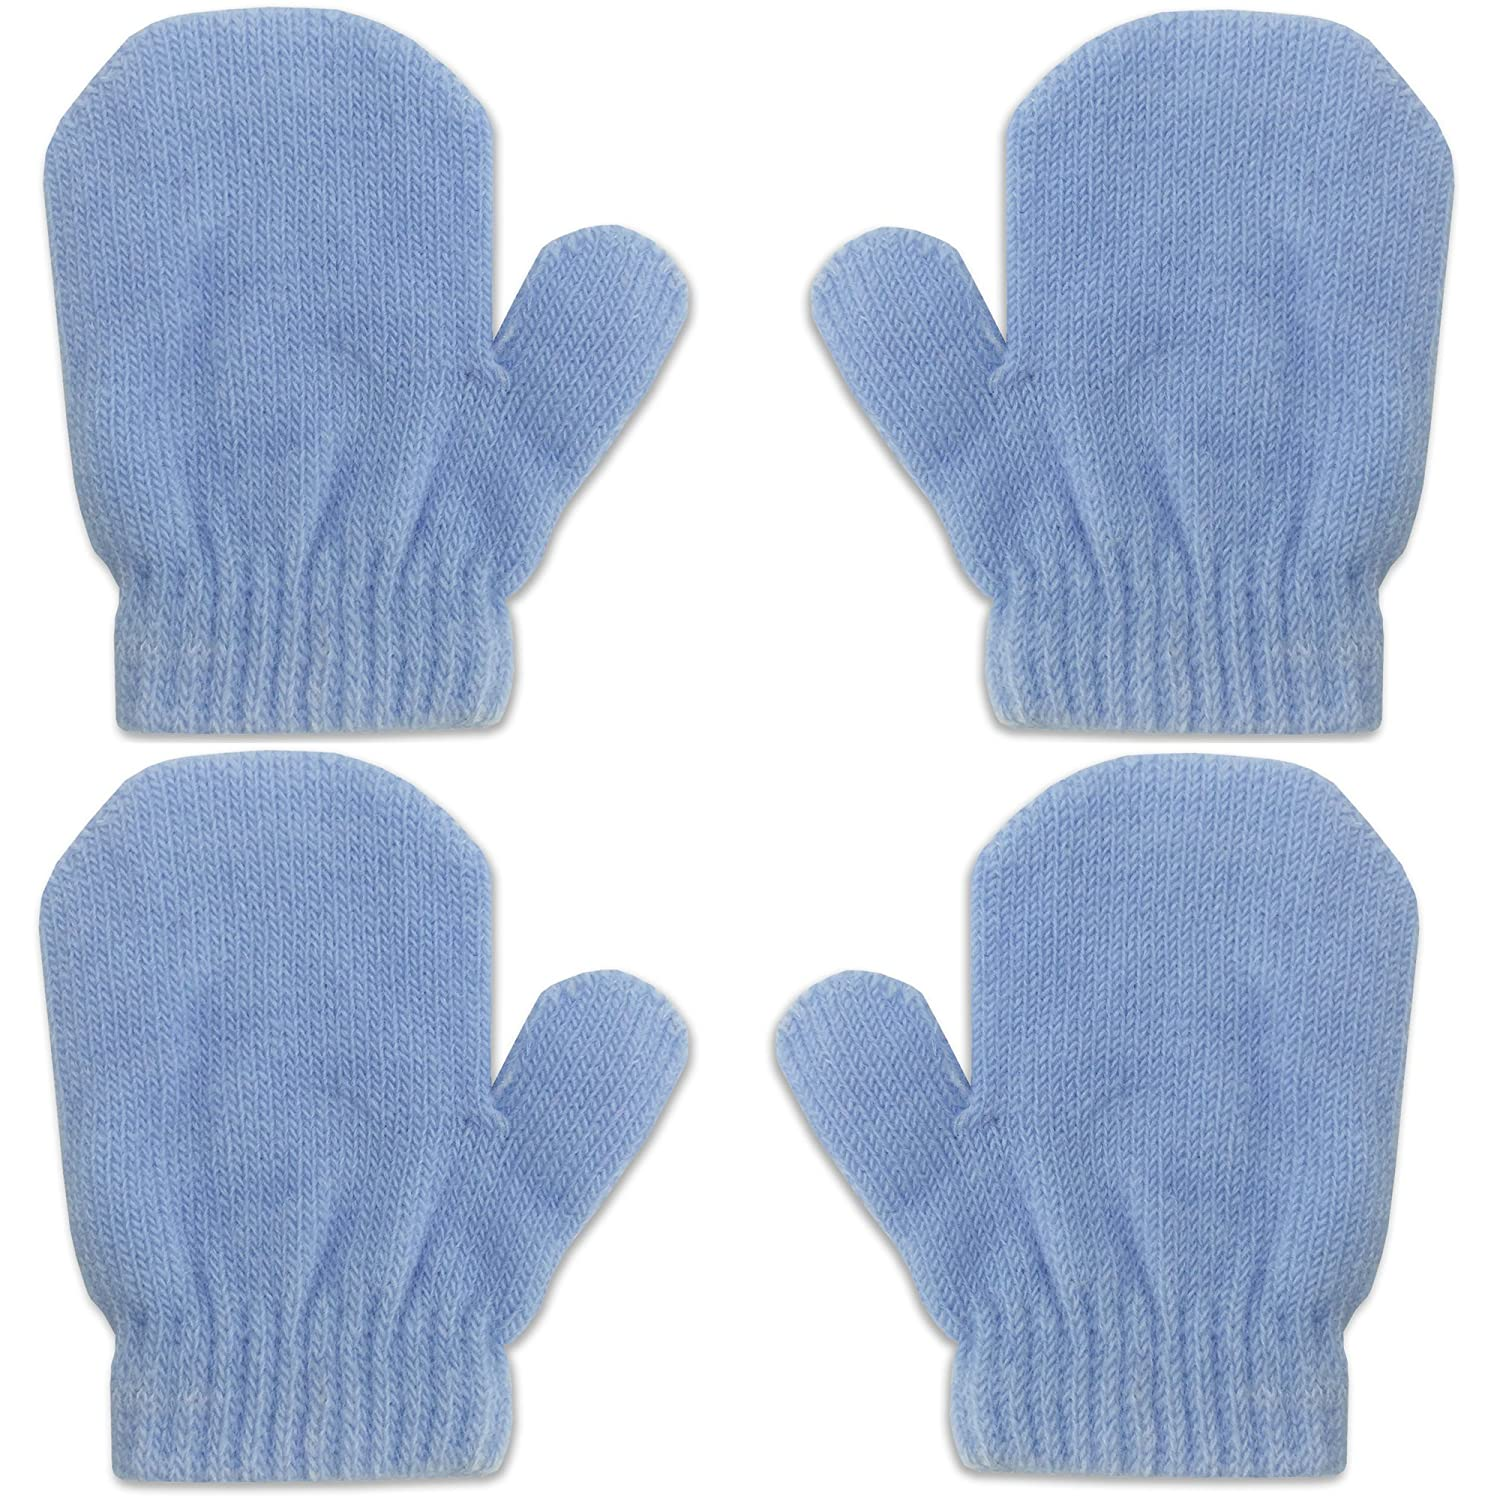 2 Pair Pack Infant Baby Boys Girls Mittens Warm Knitted for Winter Gloves 4521M-BLU-2PK